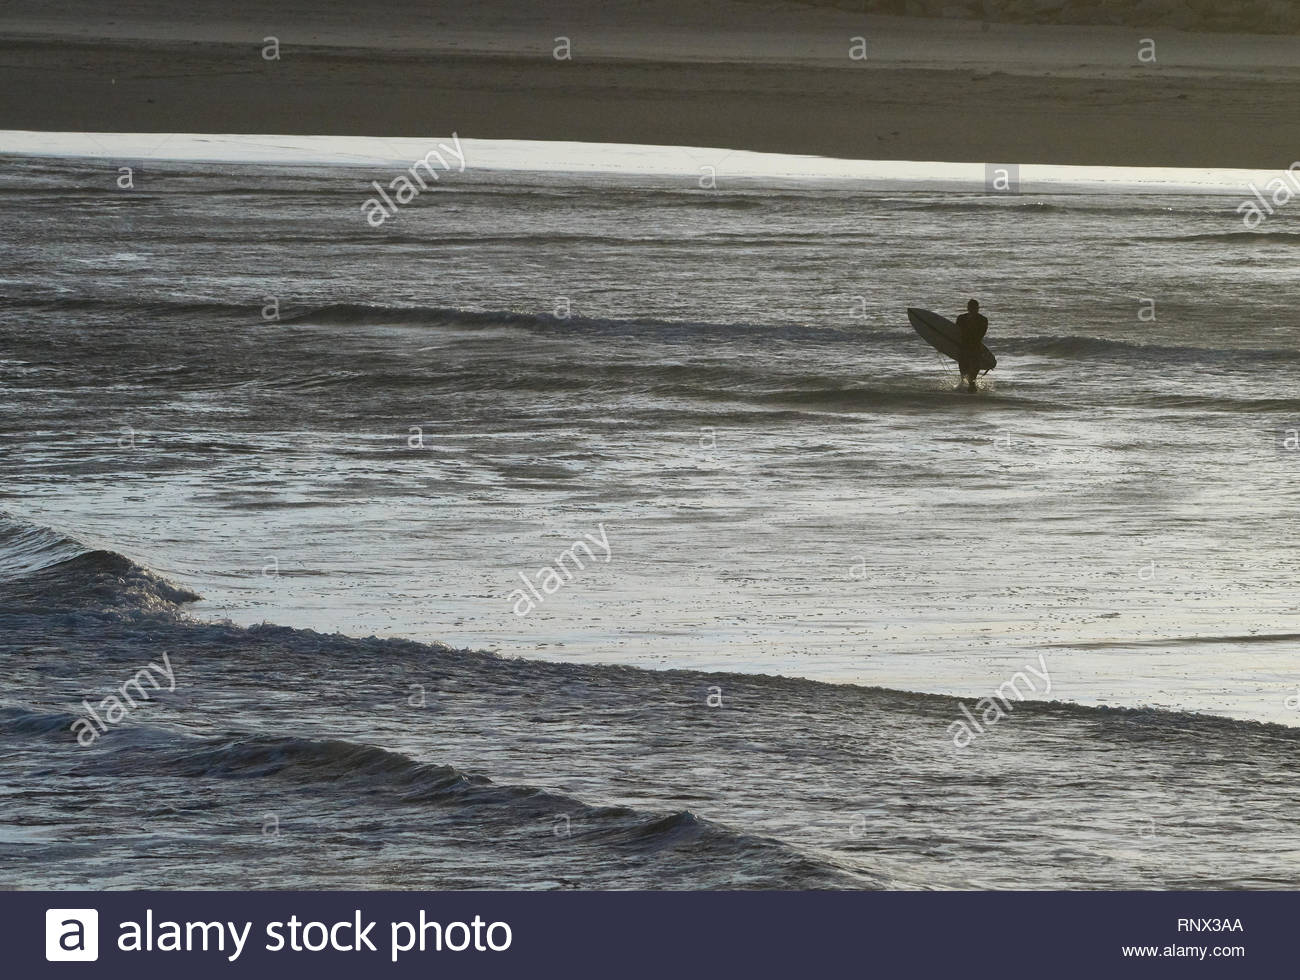 Yamba, NSW / Australia. An image depicting  the silhouette of a lone surfer entering the Pacific Ocean; taken using a telephoto lens looking onshore. - Stock Image